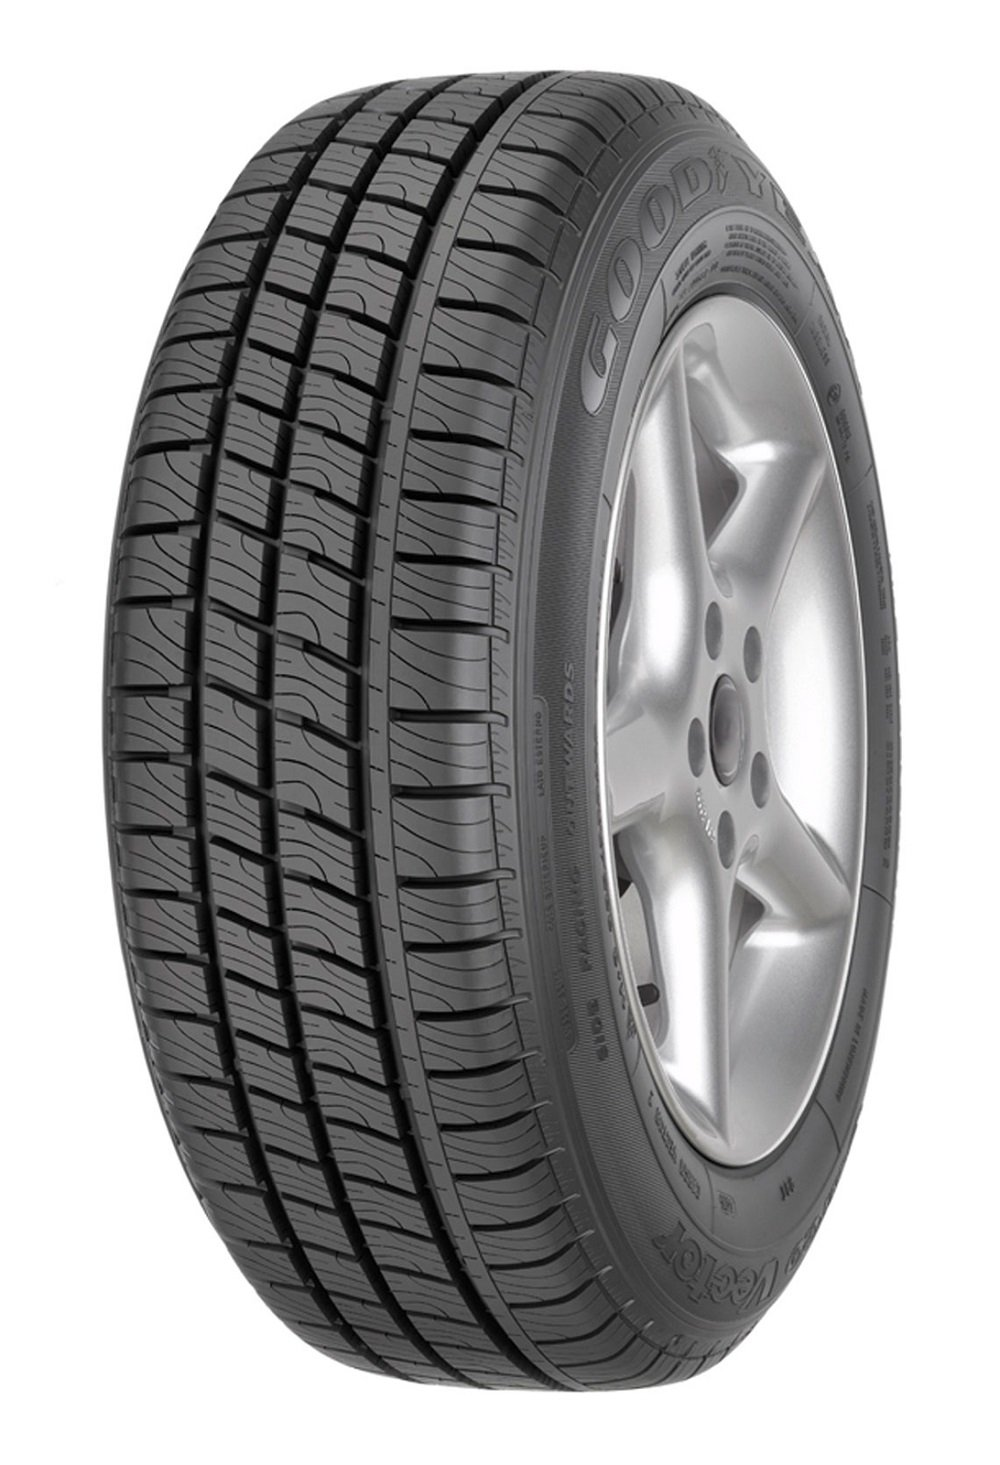 Neumático GOODYEAR Cargo Vector RE3 195/75R16 107 R